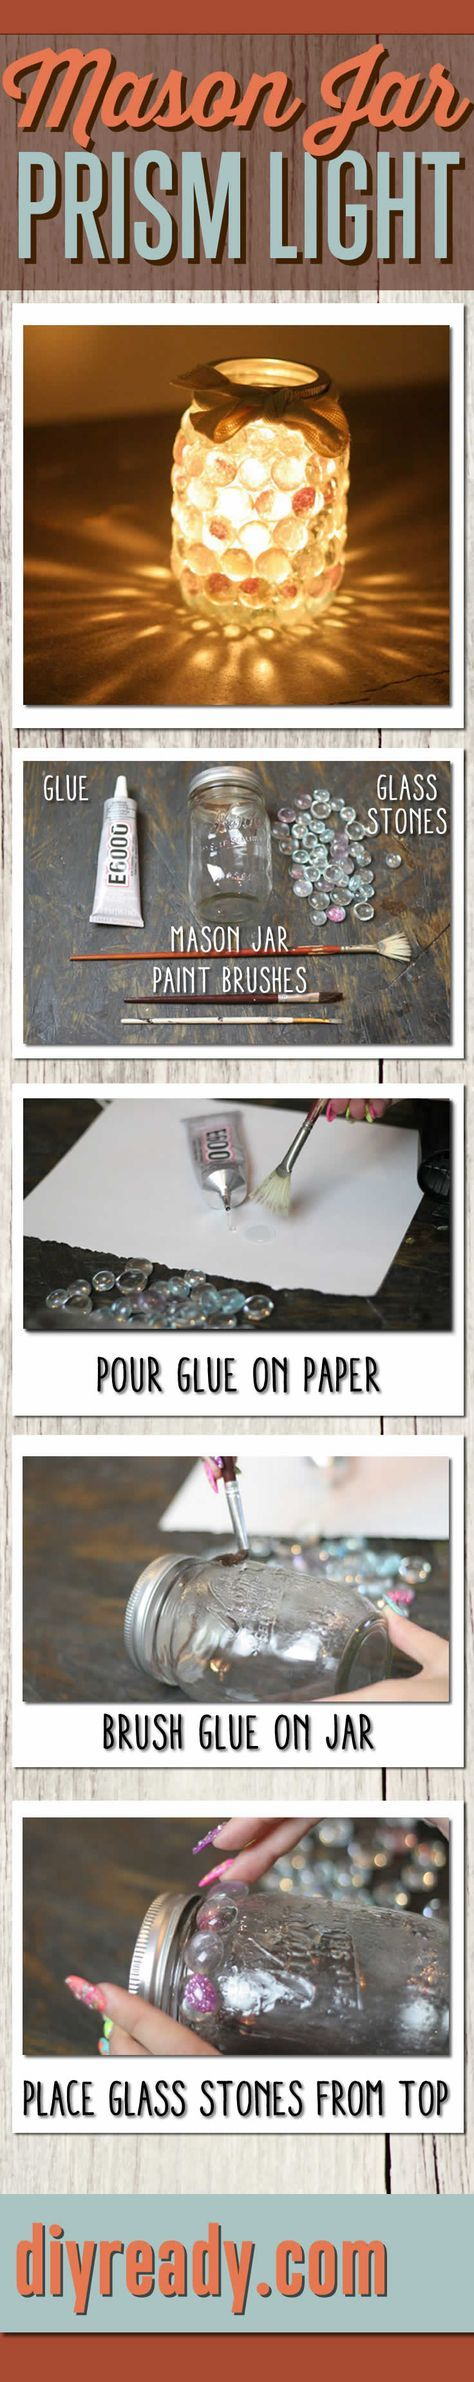 best gift ideas images on pinterest diy presents projects and